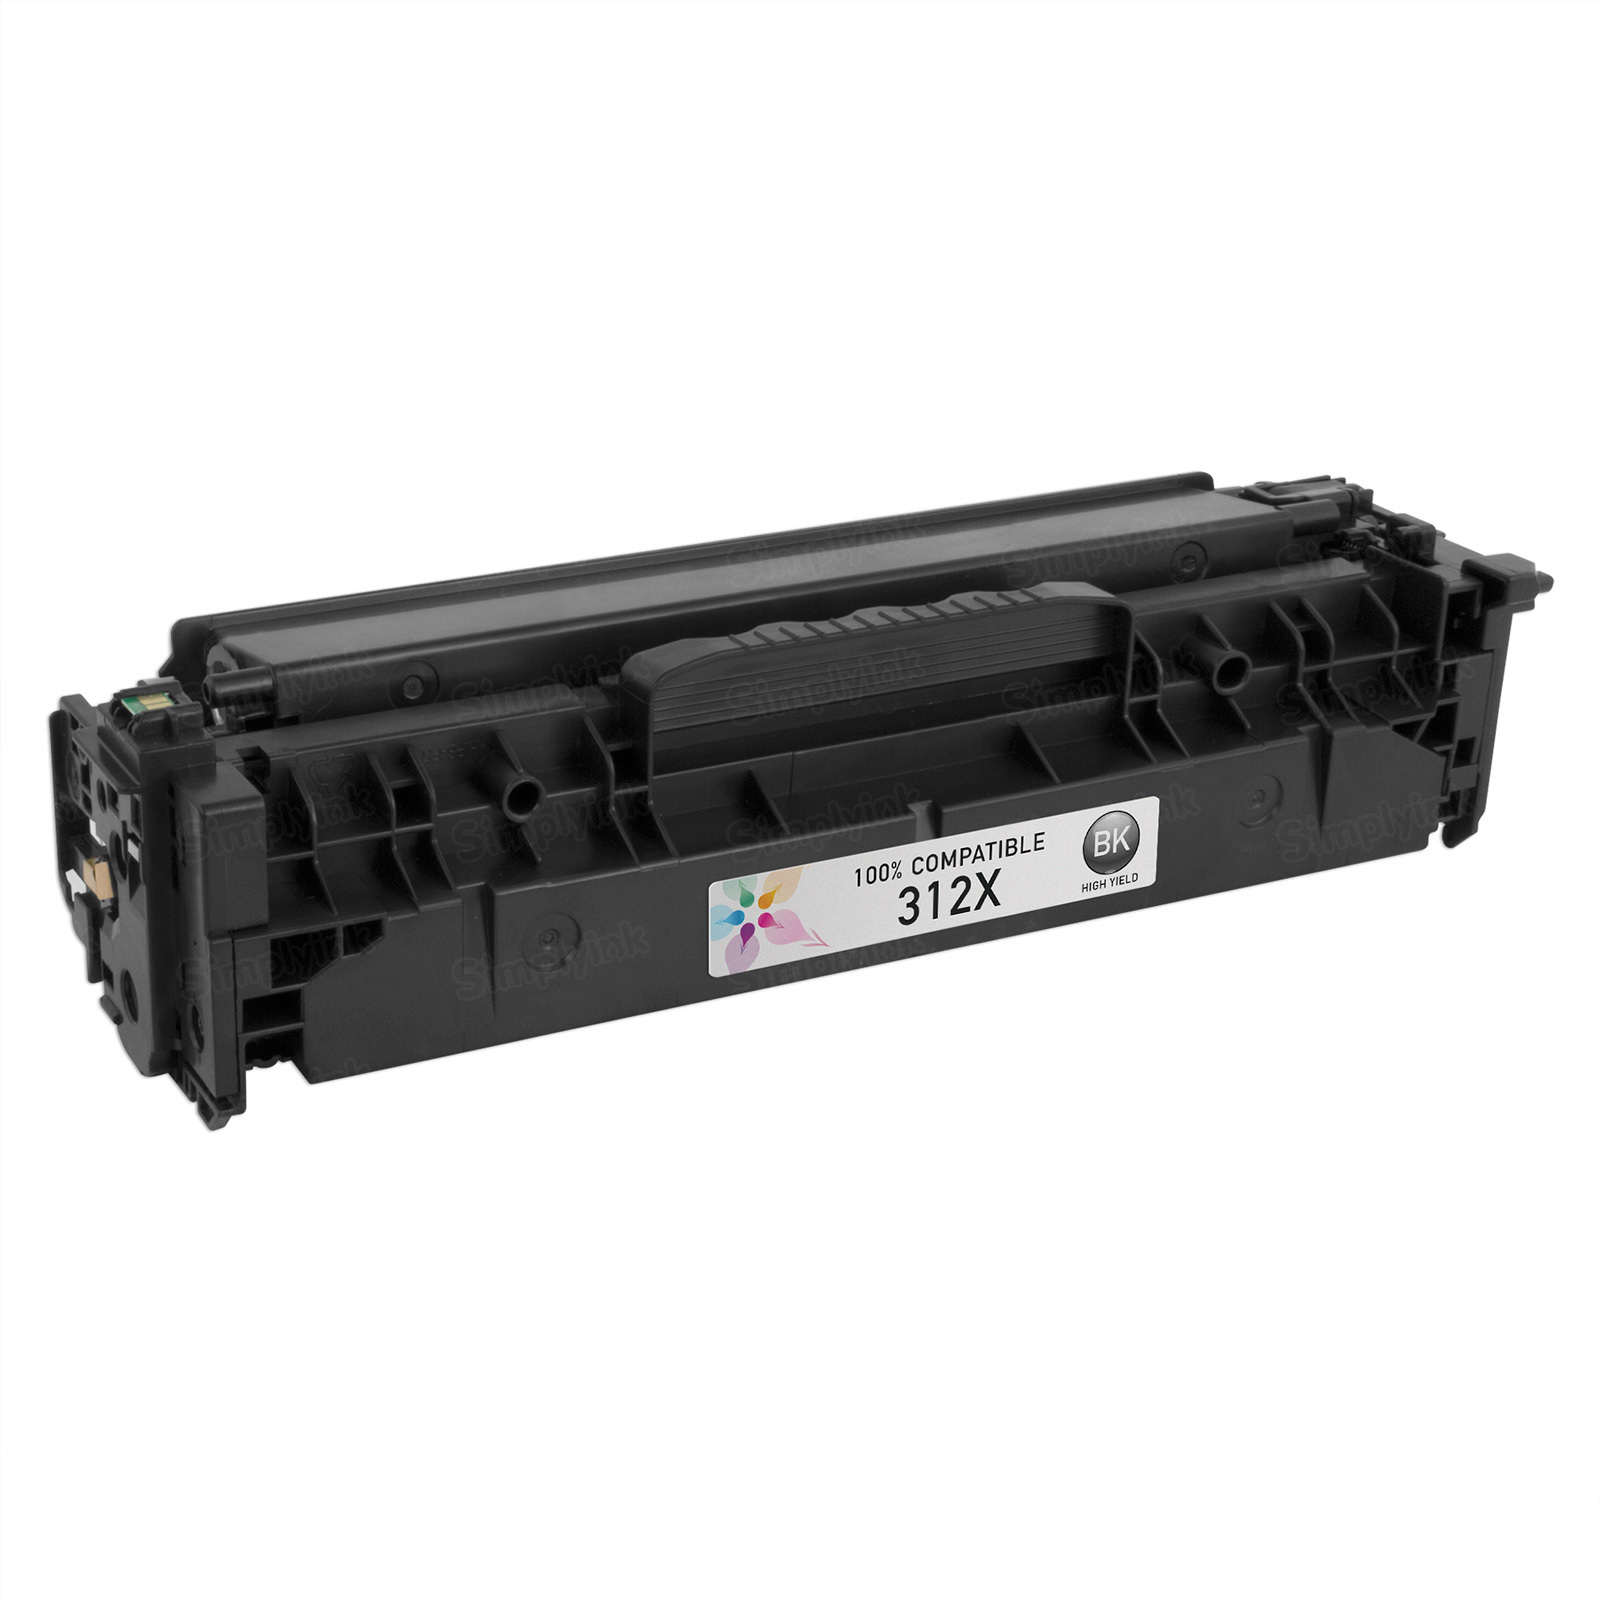 Replacement HY Black Toner for HP 312X